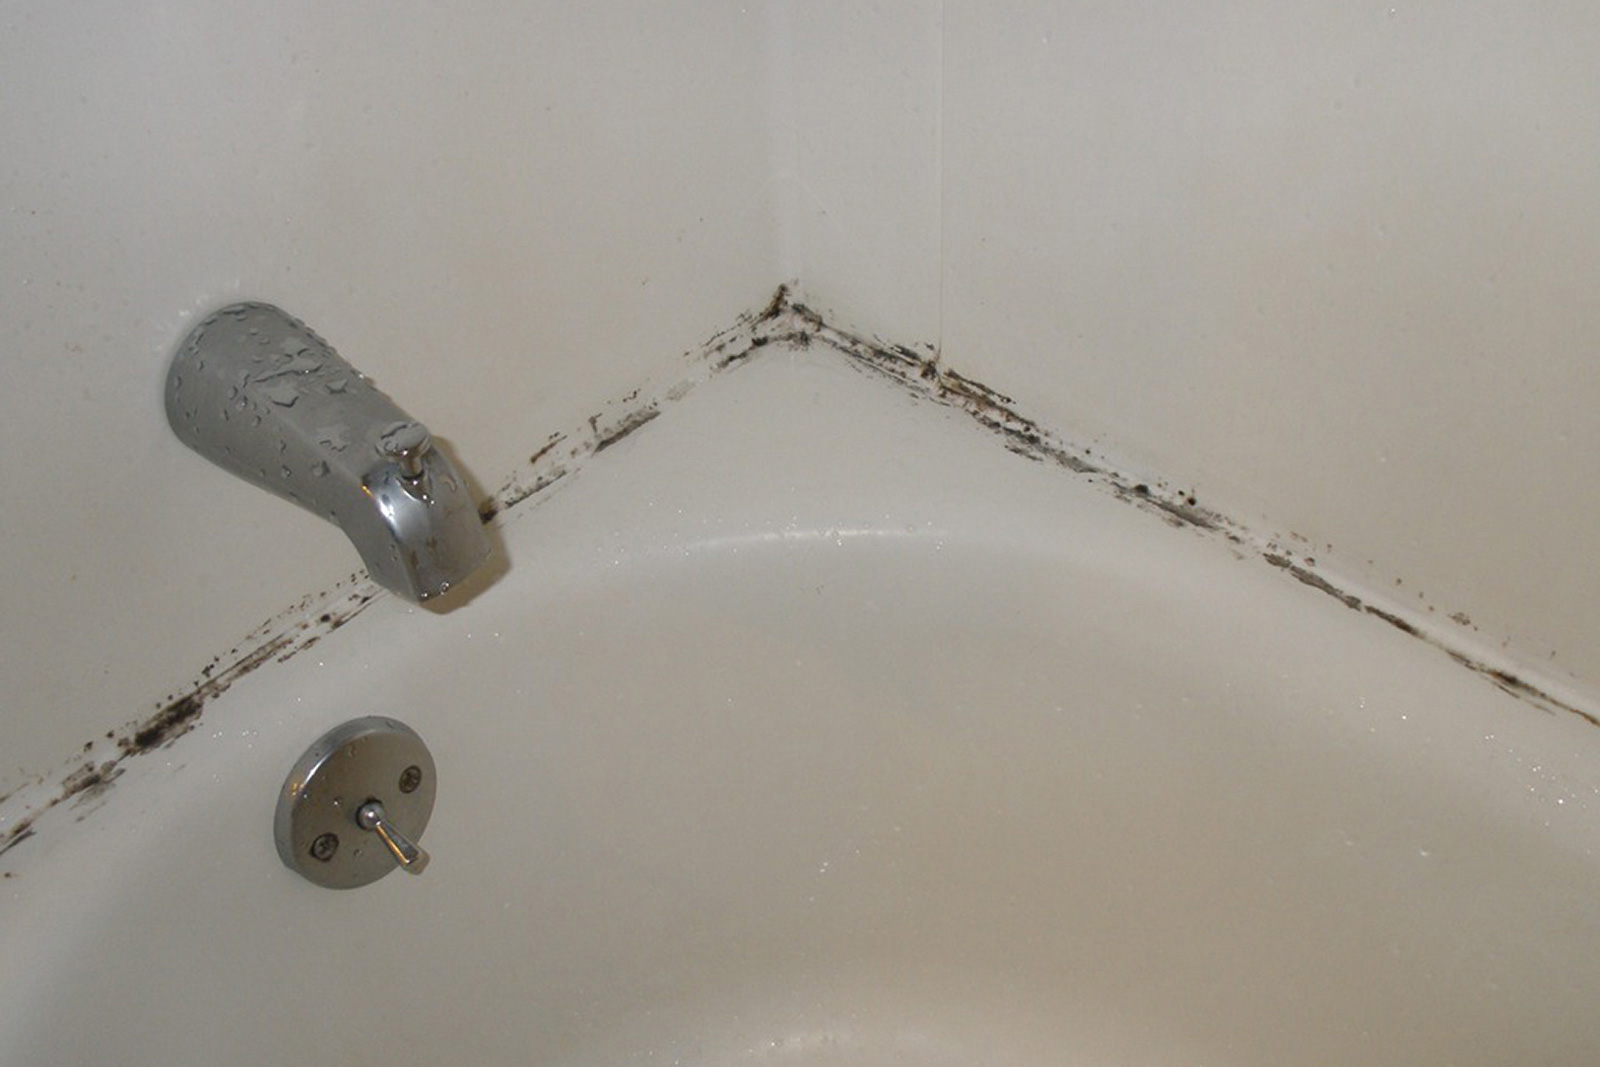 Bathroom Mold How To Kill Bathroom Mold Mold On Bathroom Ceiling - Bathroom mold killer